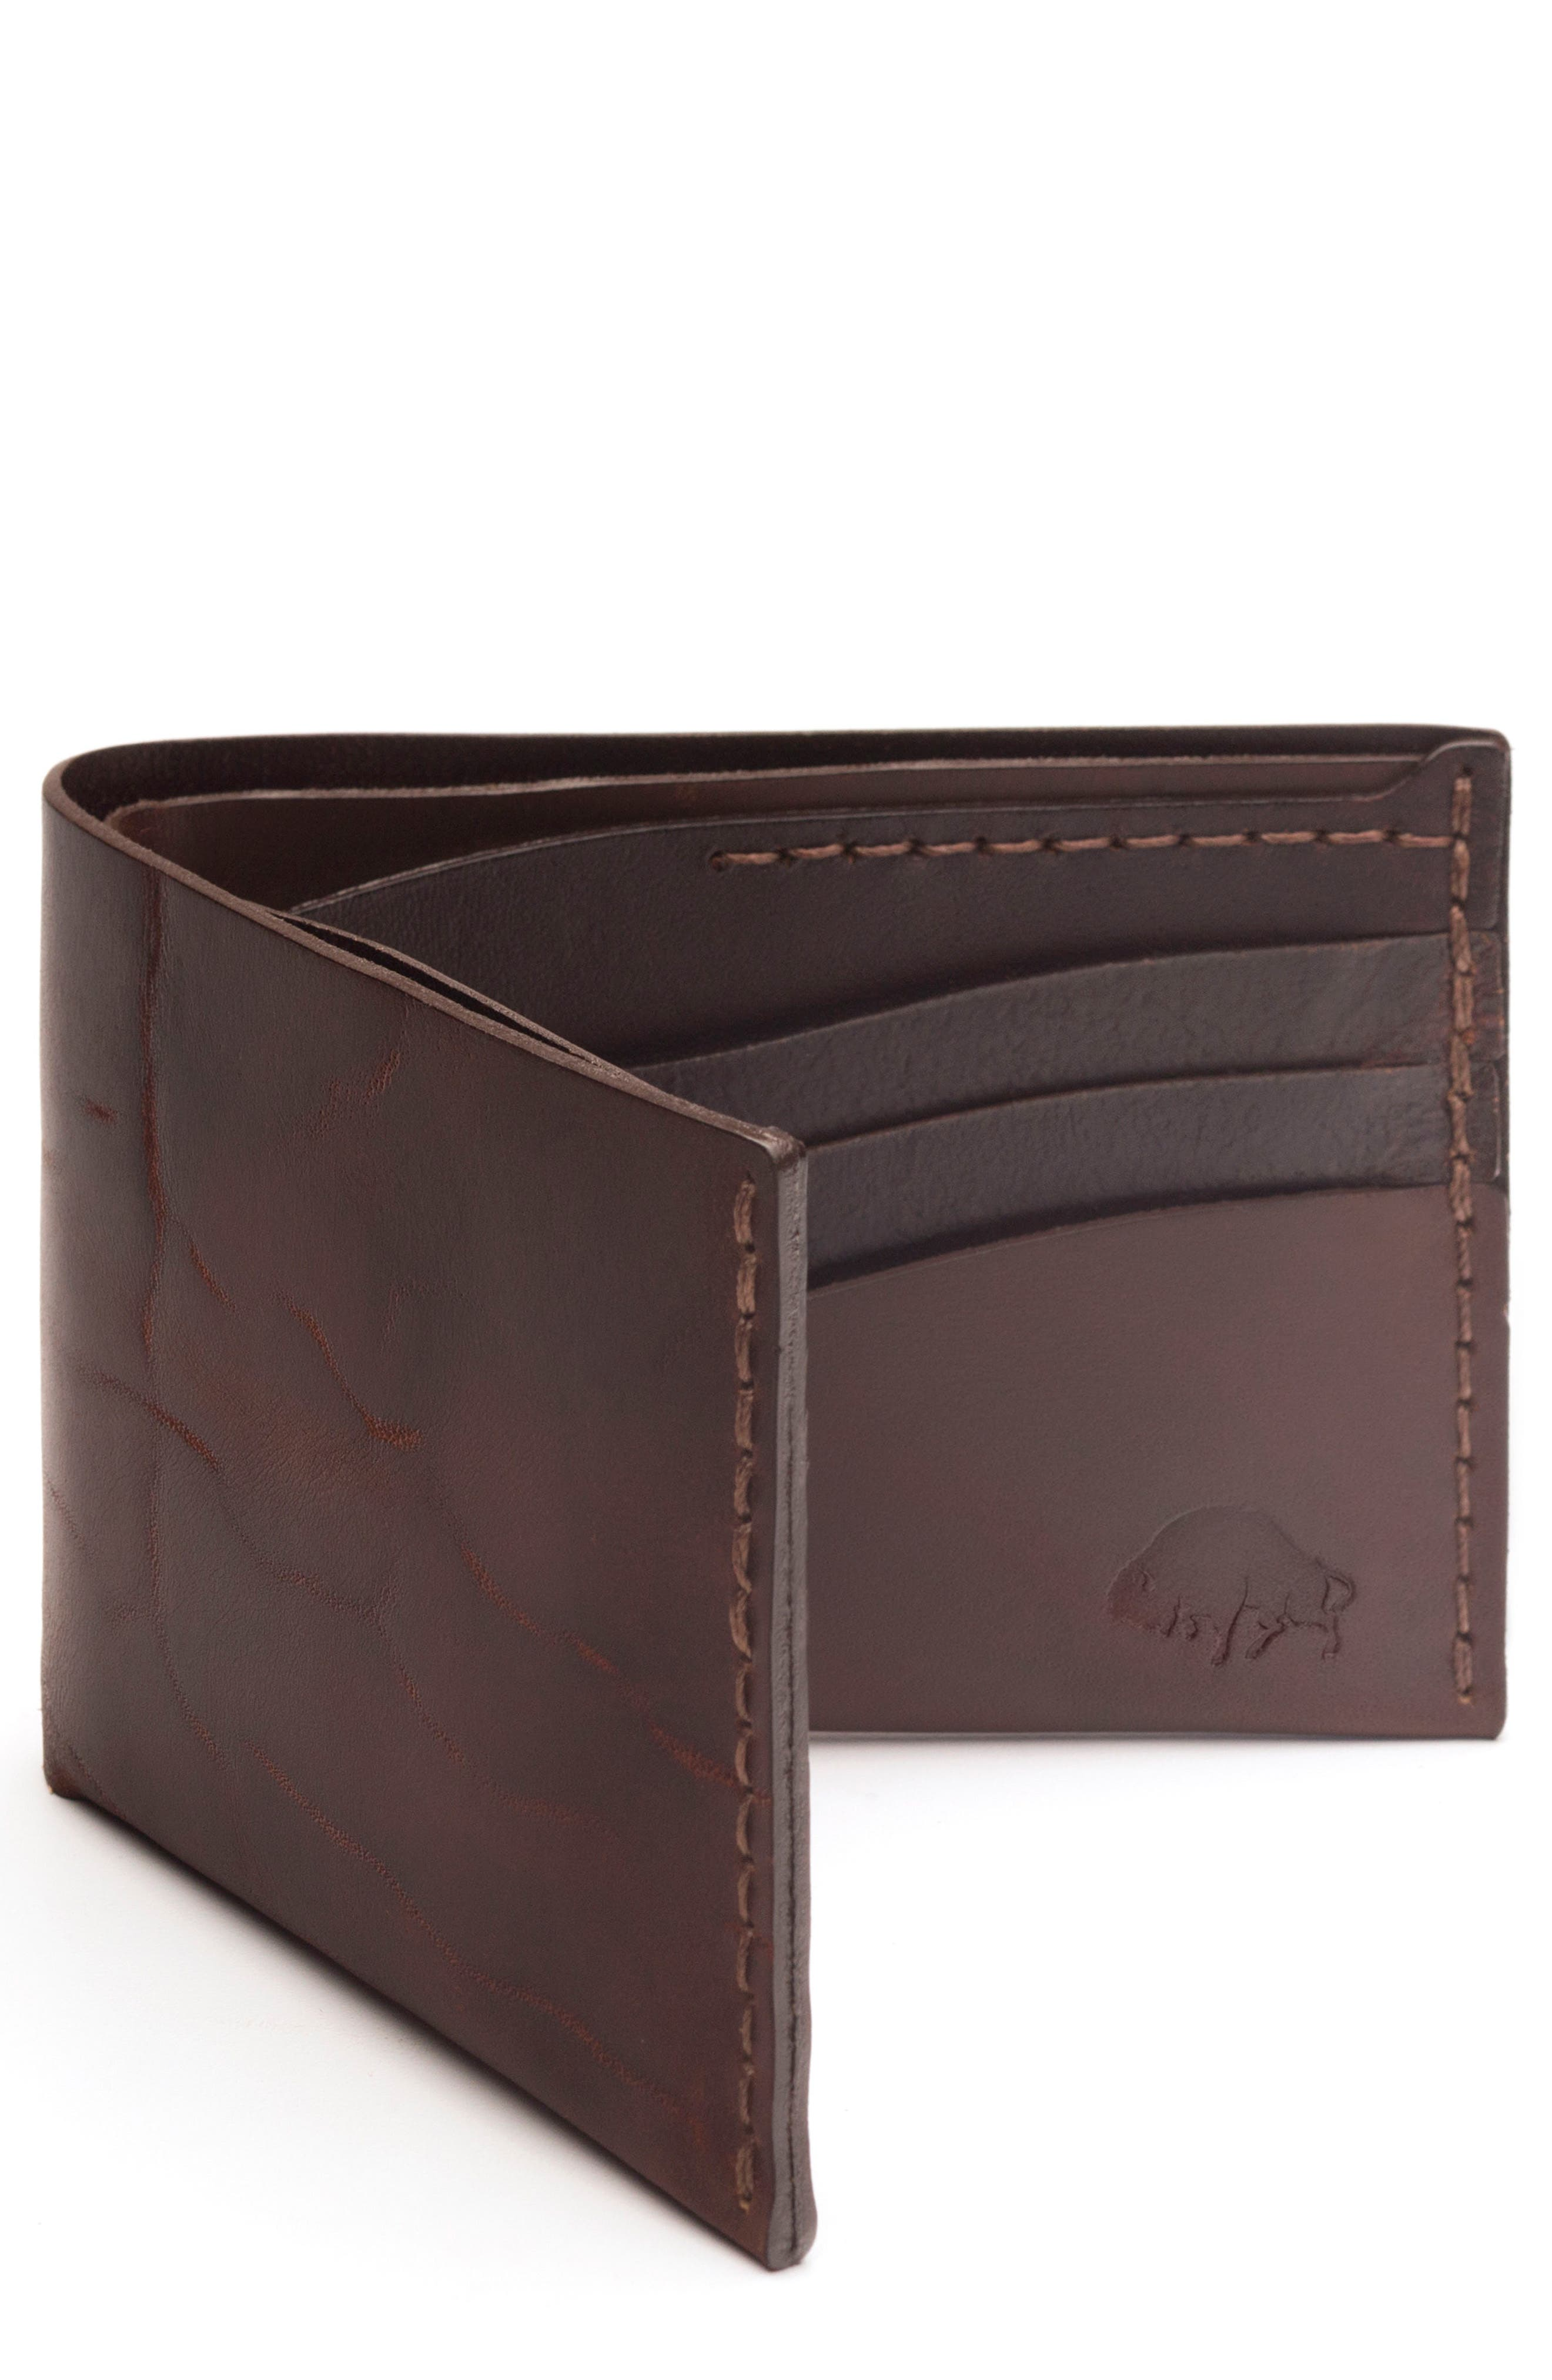 No. 8 Leather Wallet